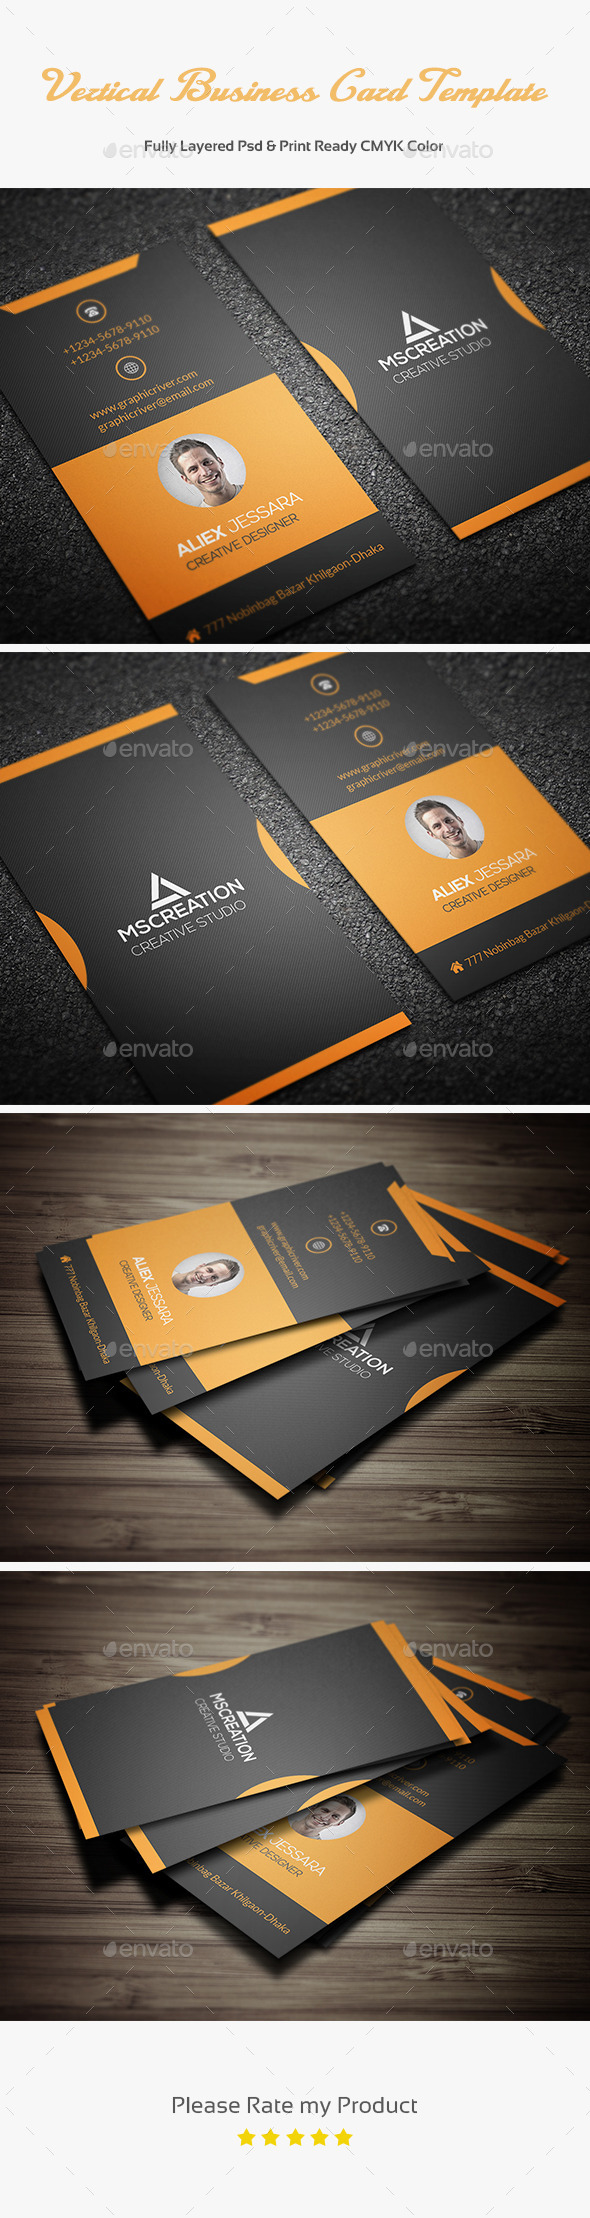 Vertical Business Card Template 3 - Creative Business Cards